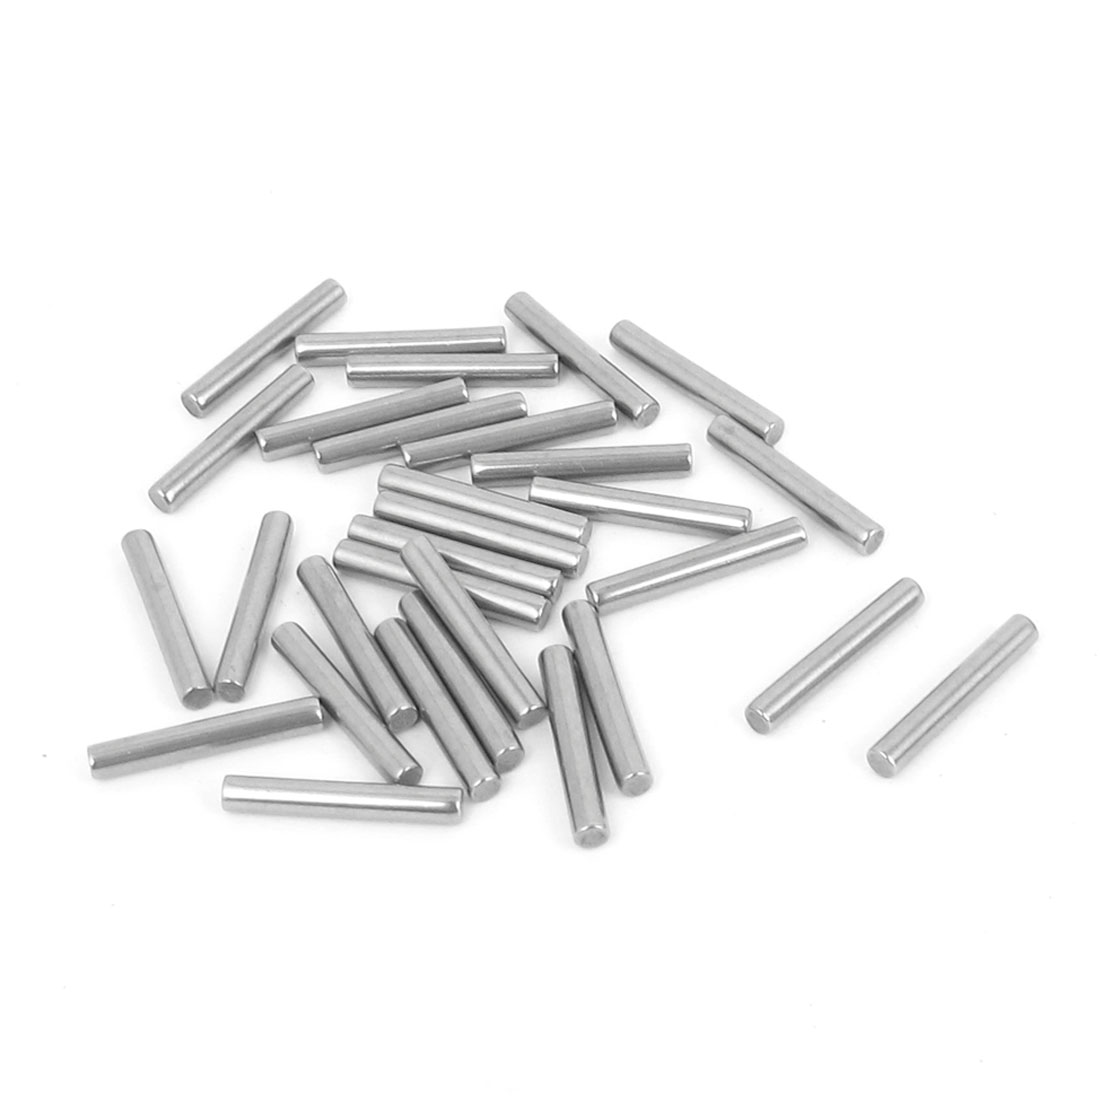 2.5mm x 16mm 304 Stainless Steel Dowel Pins Fasten Elements Silver Tone 30pcs